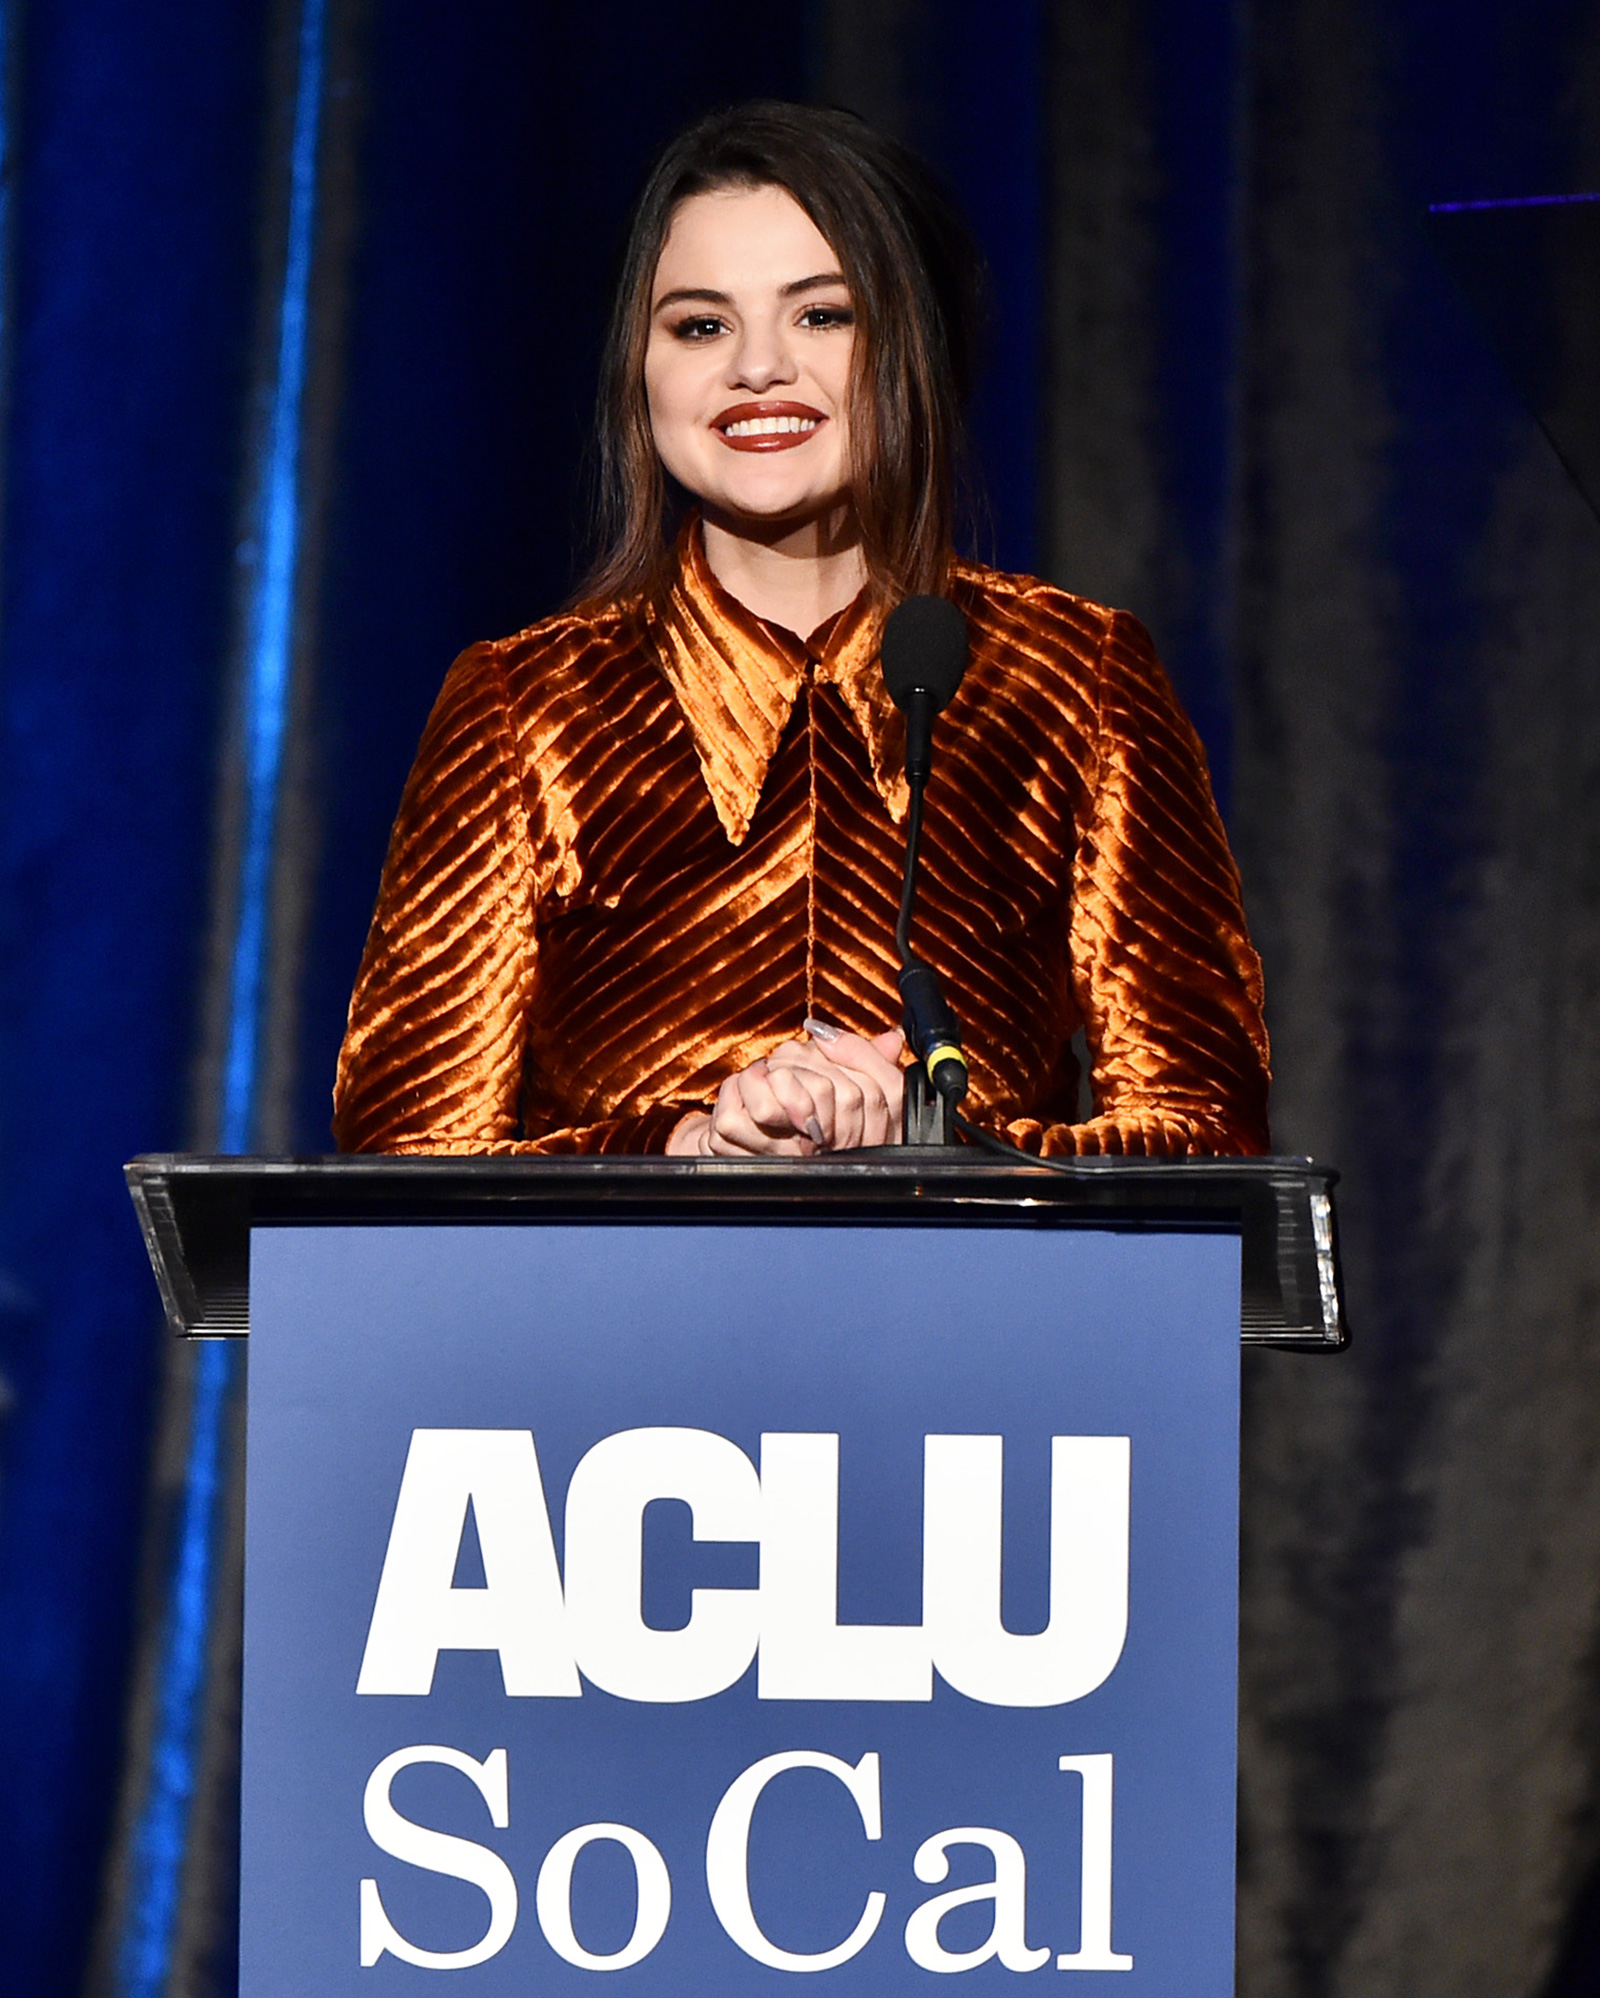 Selena Gomez speaks onstage during ACLU SoCal's Annual Bill of Rights dinner at the Beverly Wilshire Four Seasons Hotel on November 17, 2019 in Beverly Hills, California